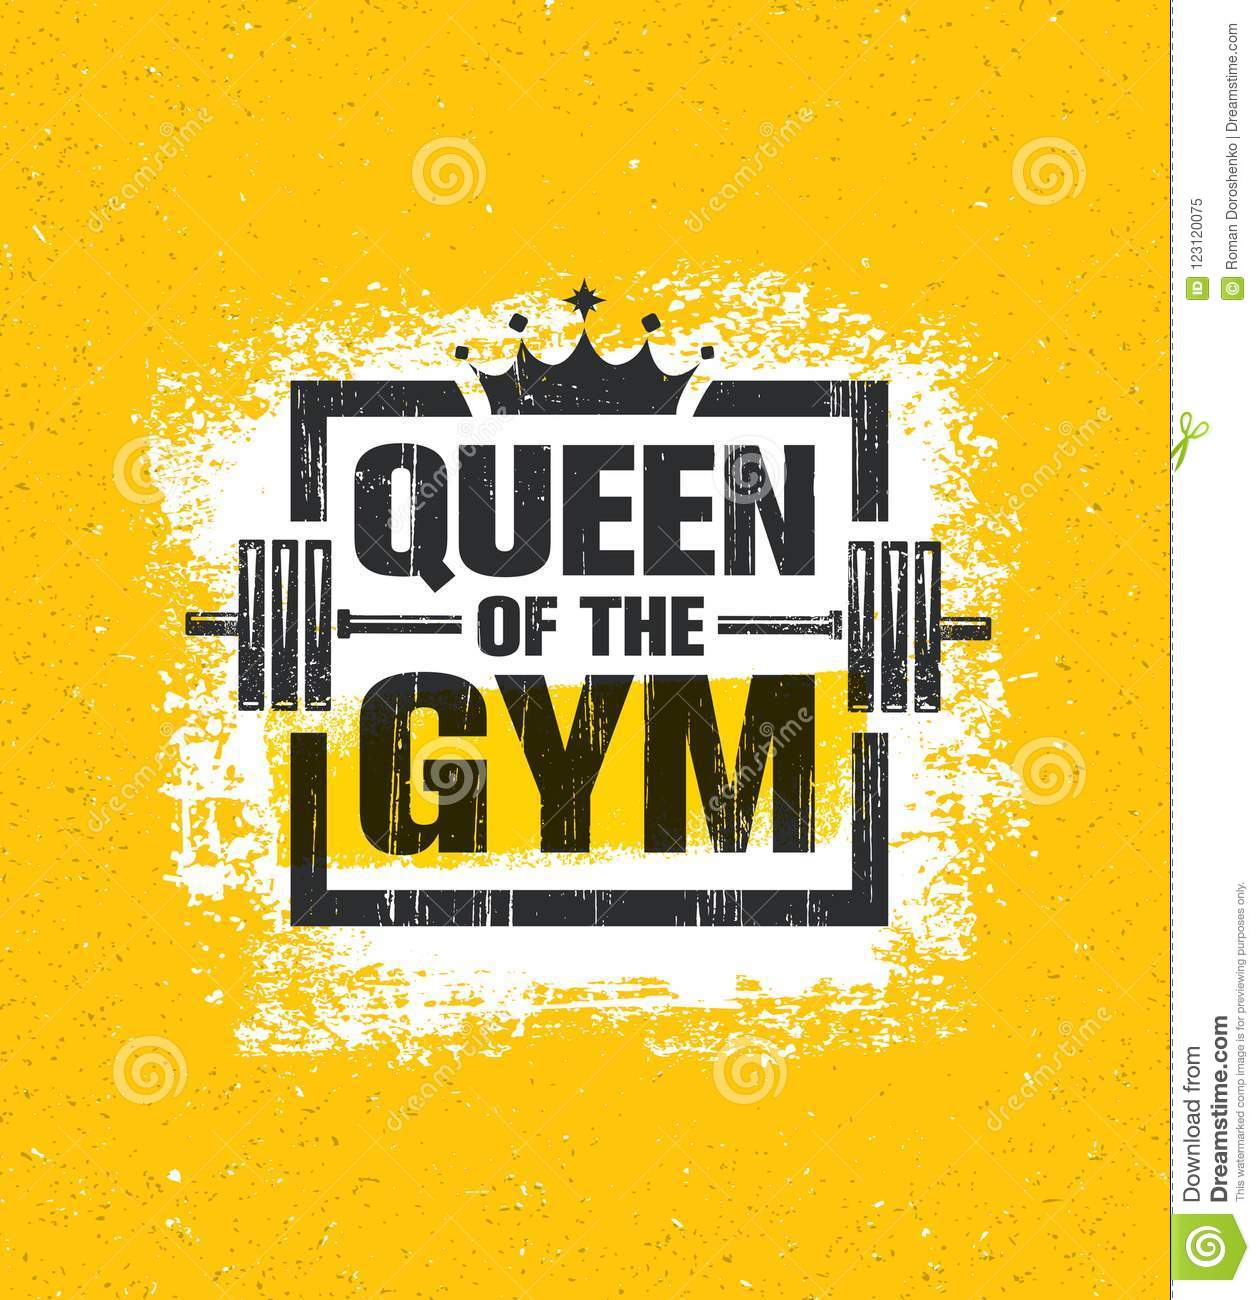 Inspiring Woman Female Workout And Fitness Gym Motivation Quote Illustration Sign Creative Strong Sport Vector Stock Vector Illustration Of Athlete Active 123120075